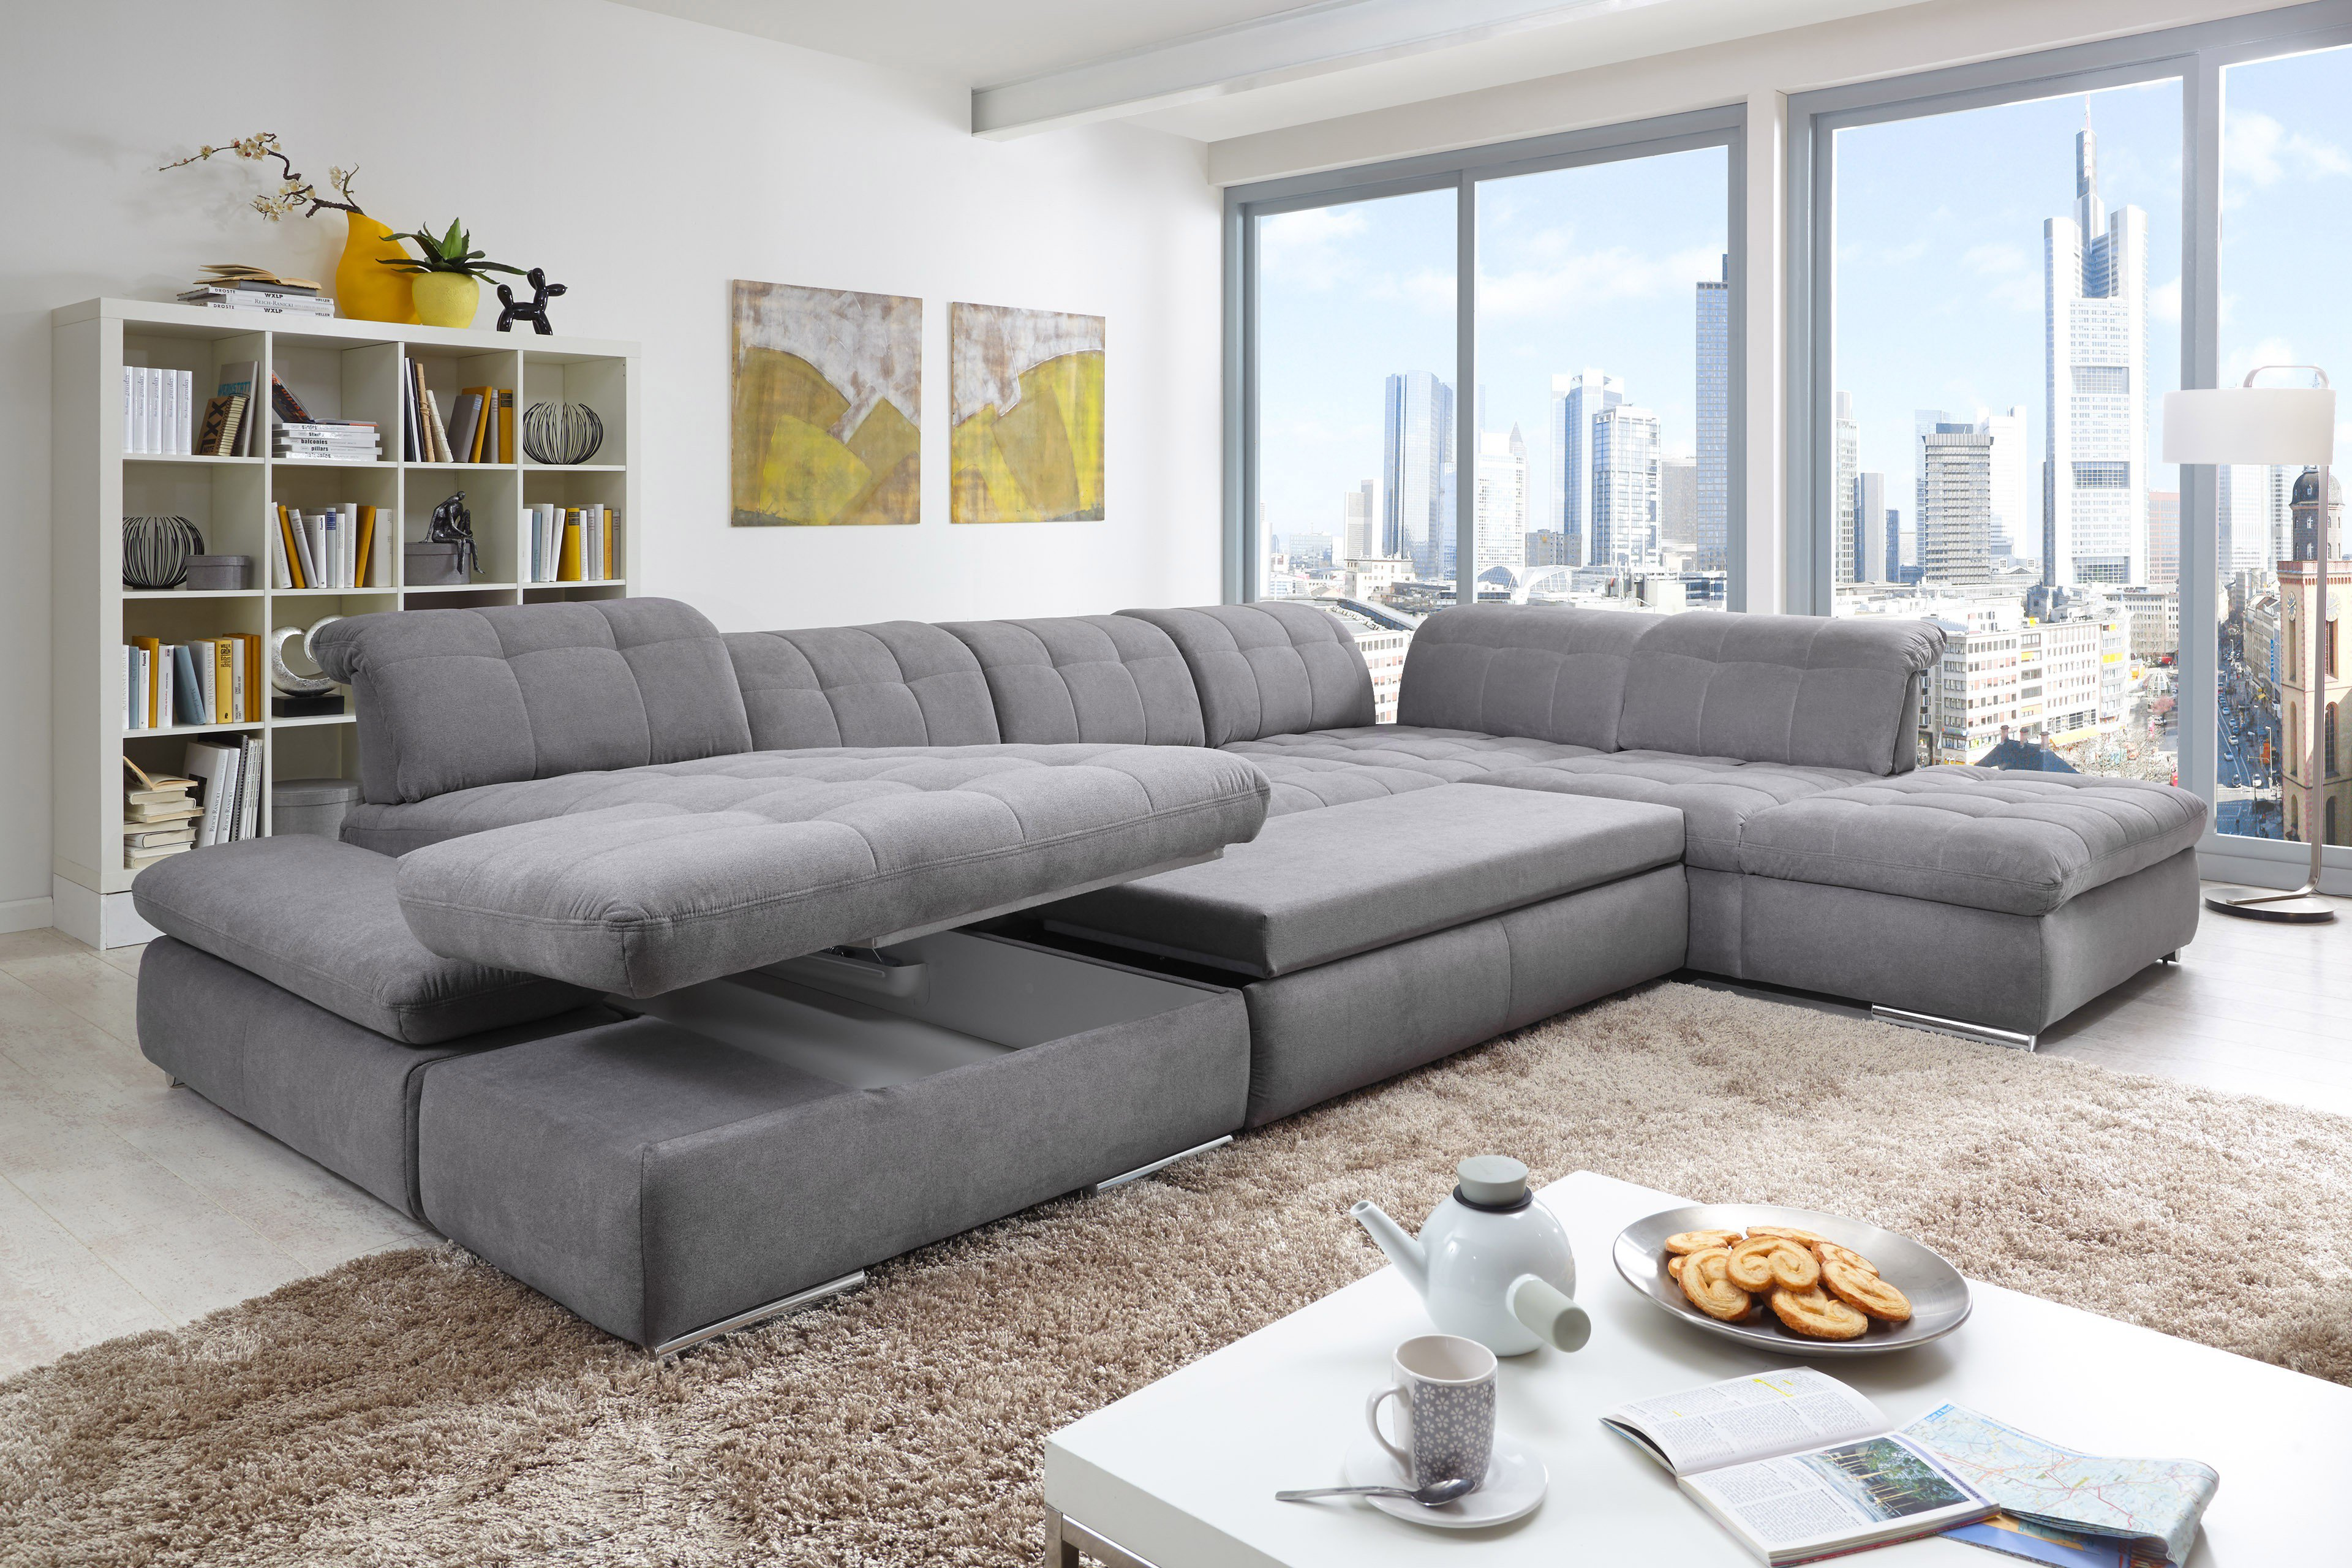 Poco Polstermöbel Houston U Förmiges Sofa In Grau Möbel Letz Ihr Online Shop